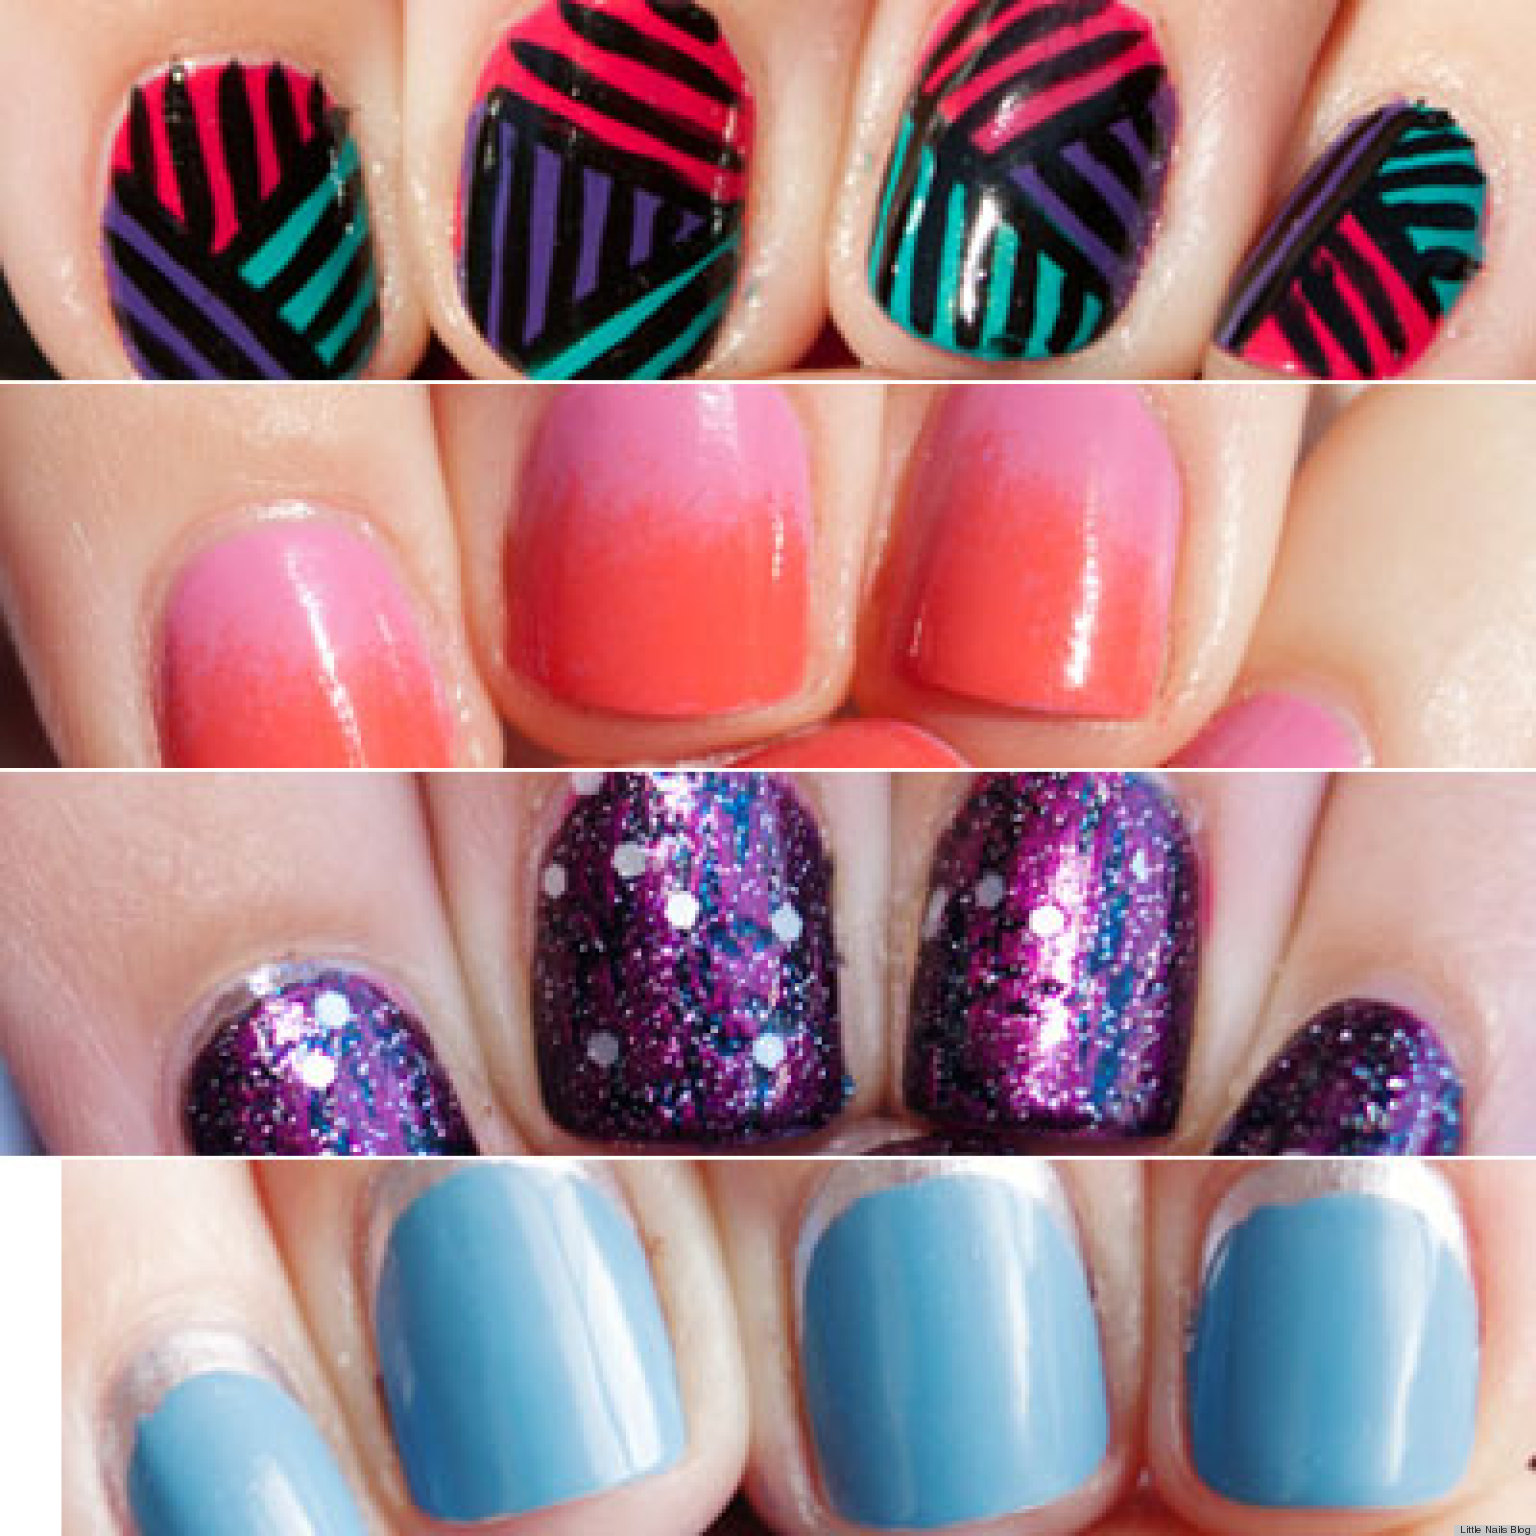 Nail Art For Short Nails Plain: 13 Nail Art Ideas For Teeny Tiny Fingertips (PHOTOS